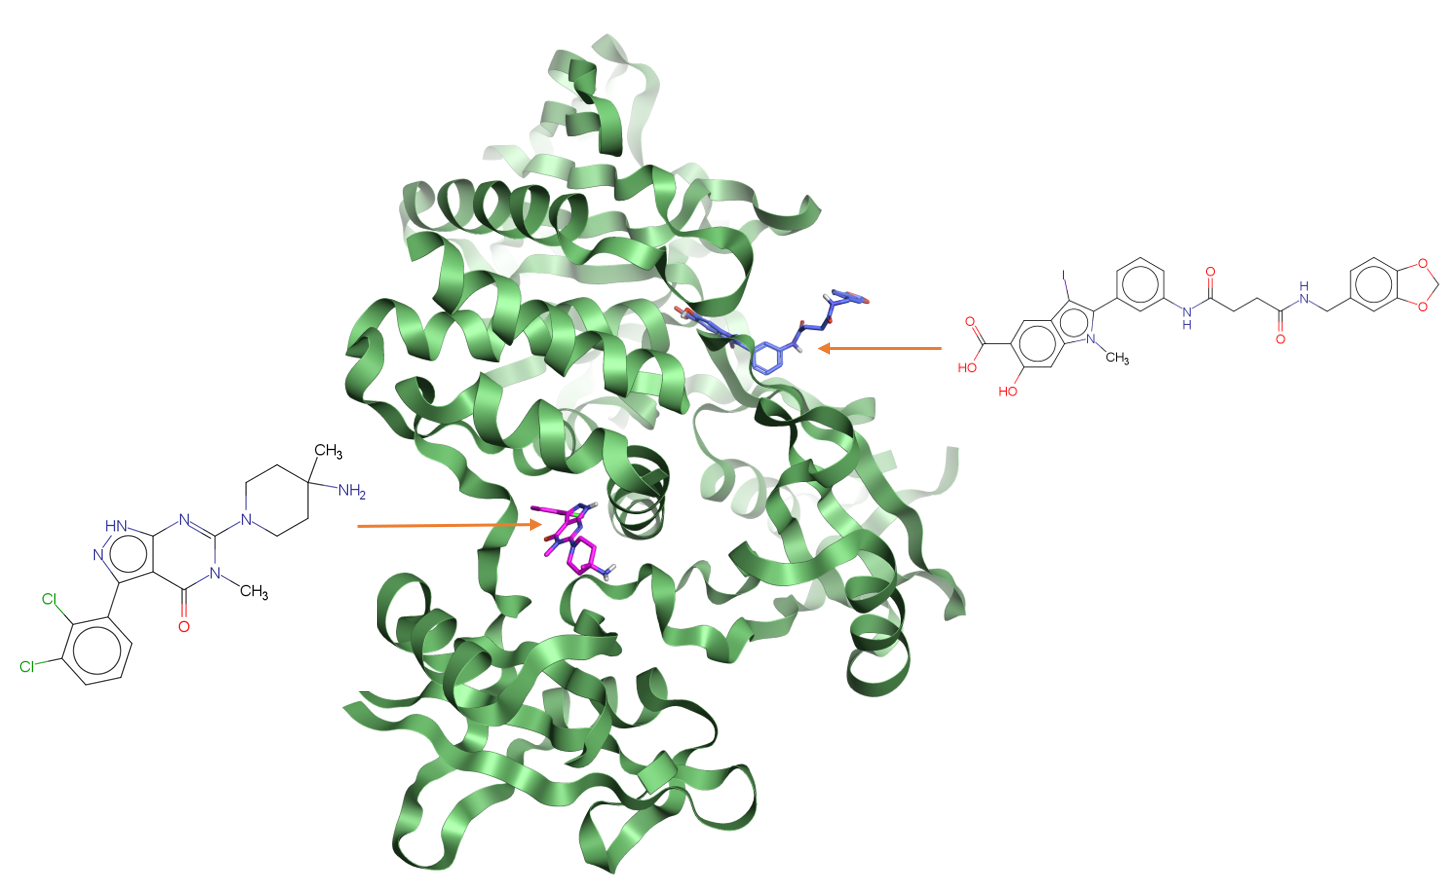 Phosphate binding site and allosteric binding site for Tyrosine-protein phosphatase non-receptor type 11